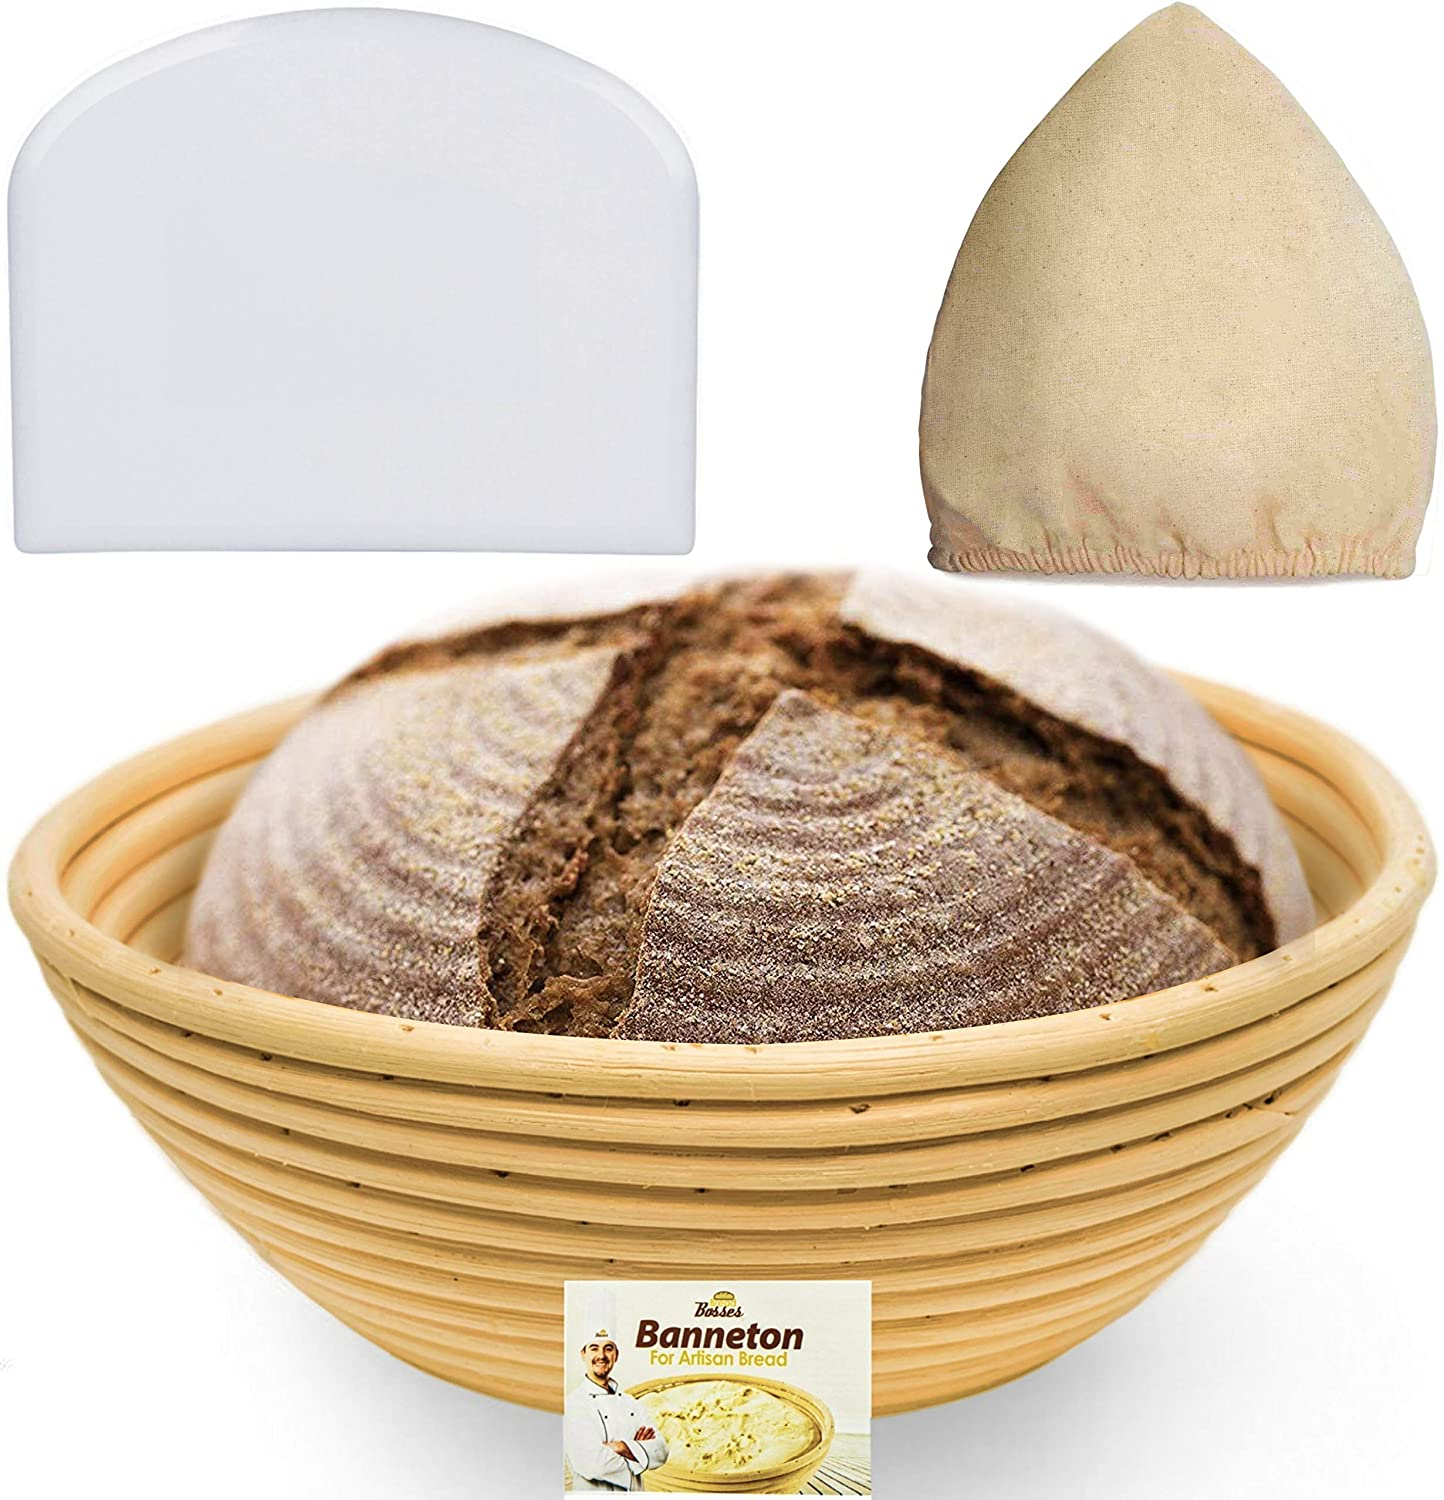 BUY this 9-Inch Bread Banneton Proofing Basket